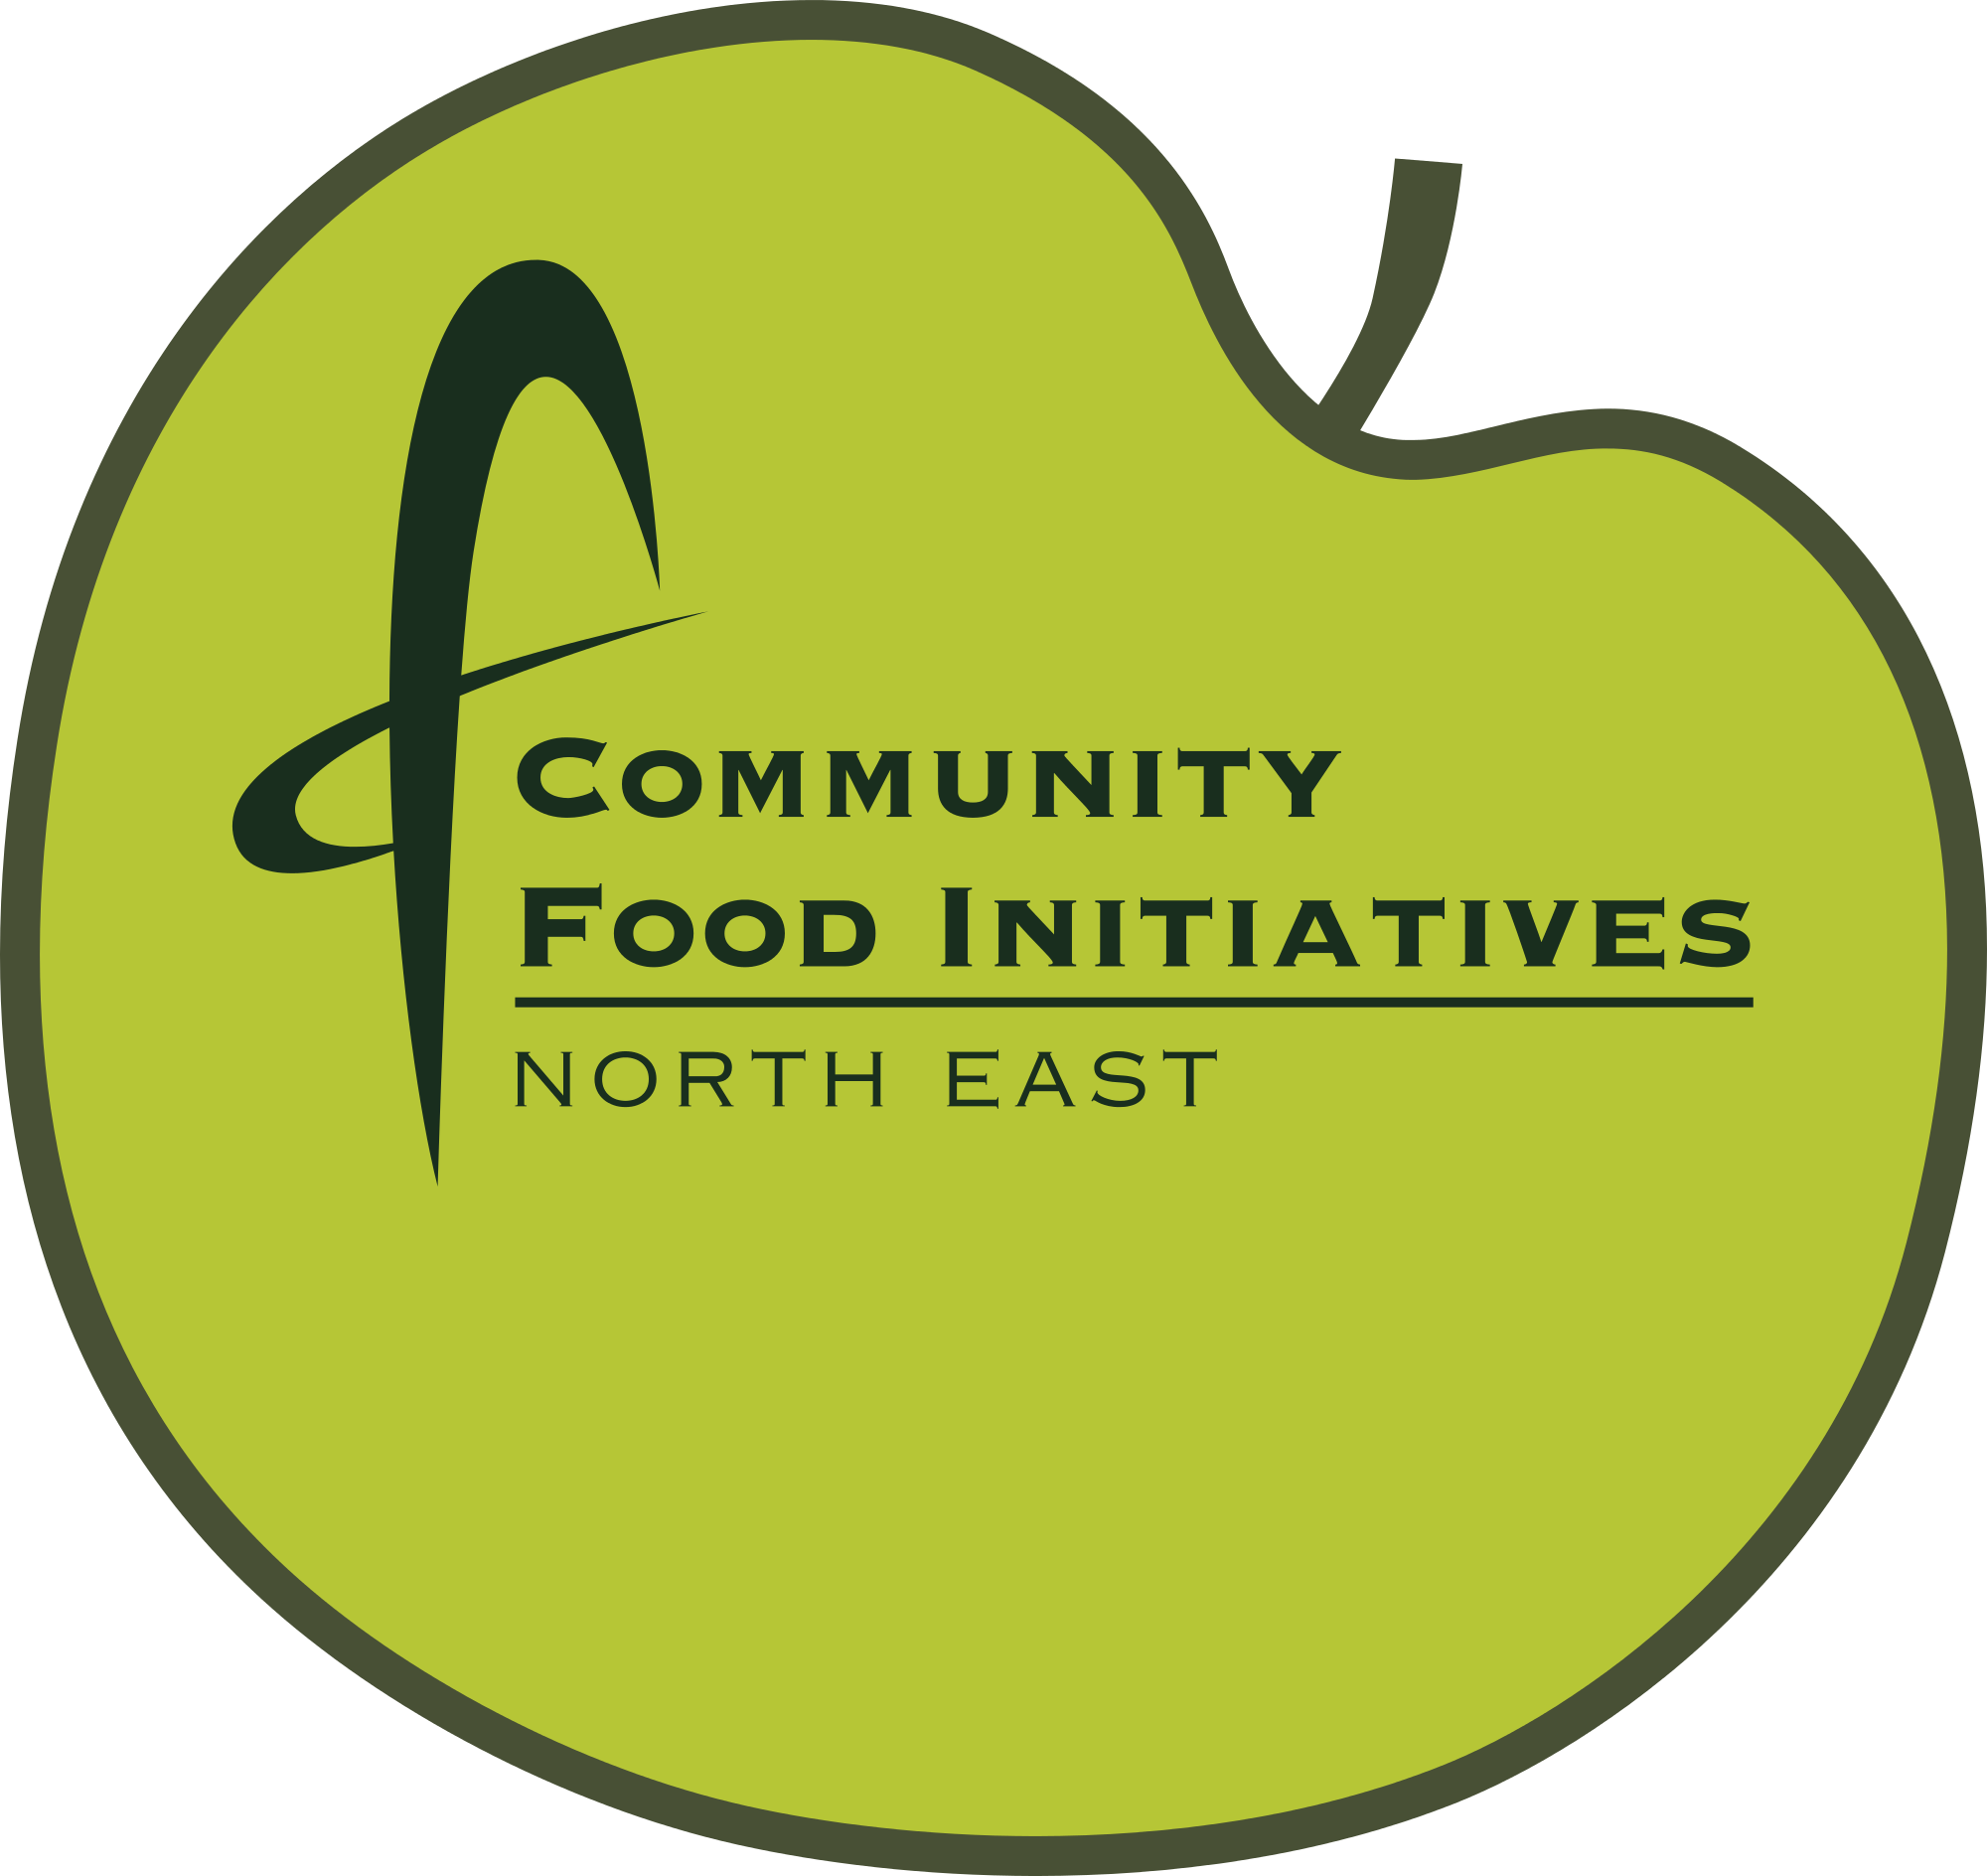 Community Food Initiative North East